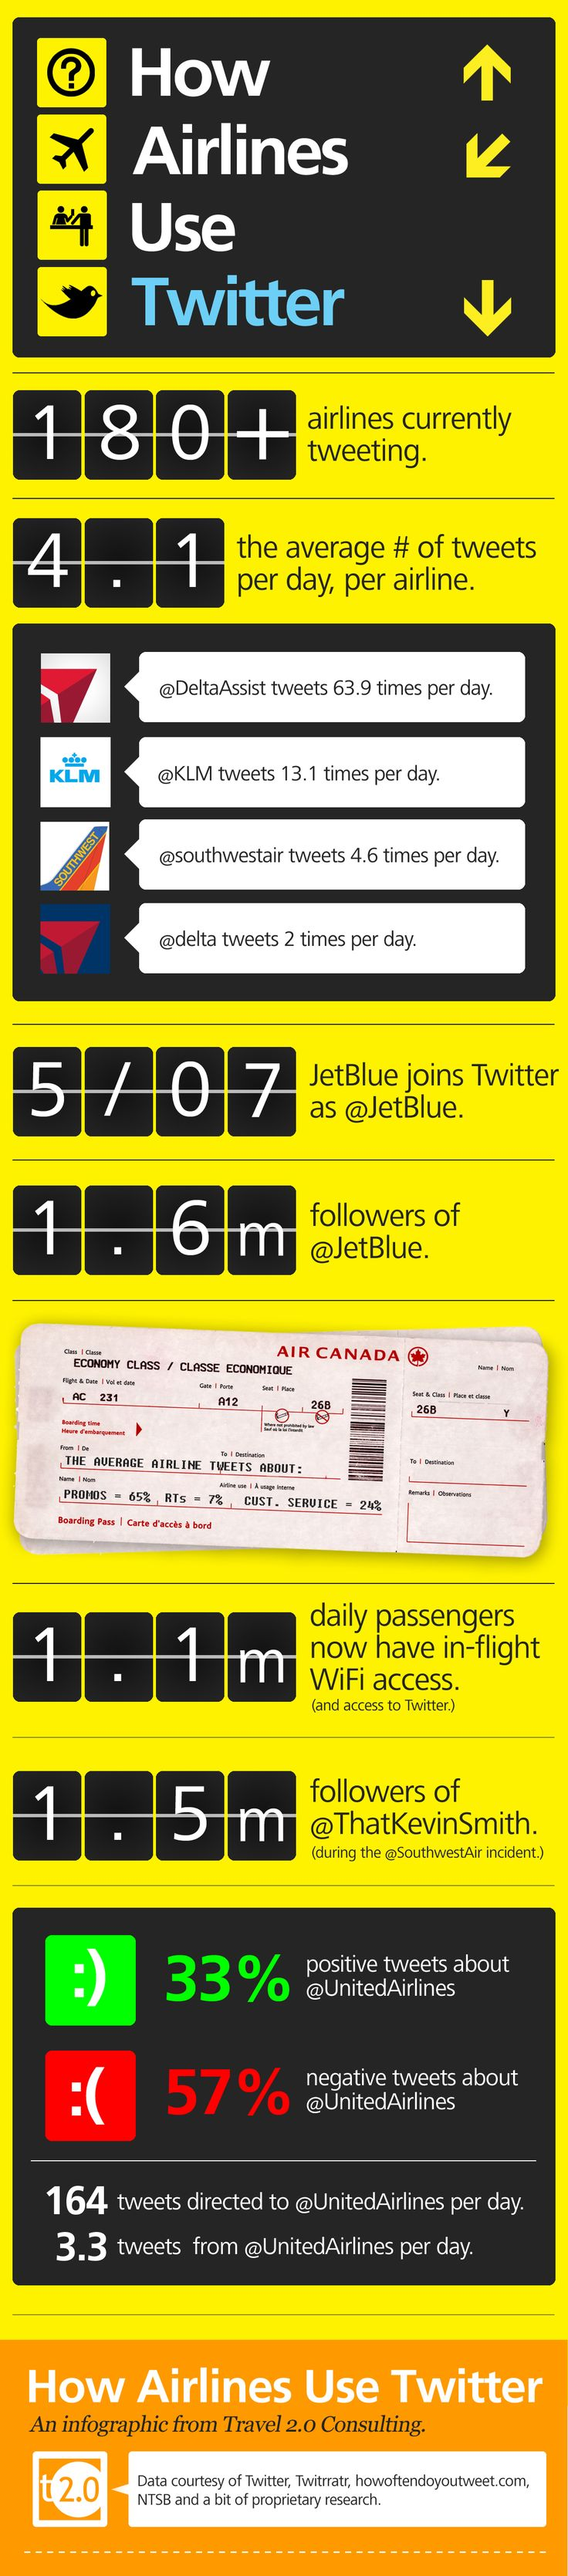 How Airlines Use Twitter [Infographic]